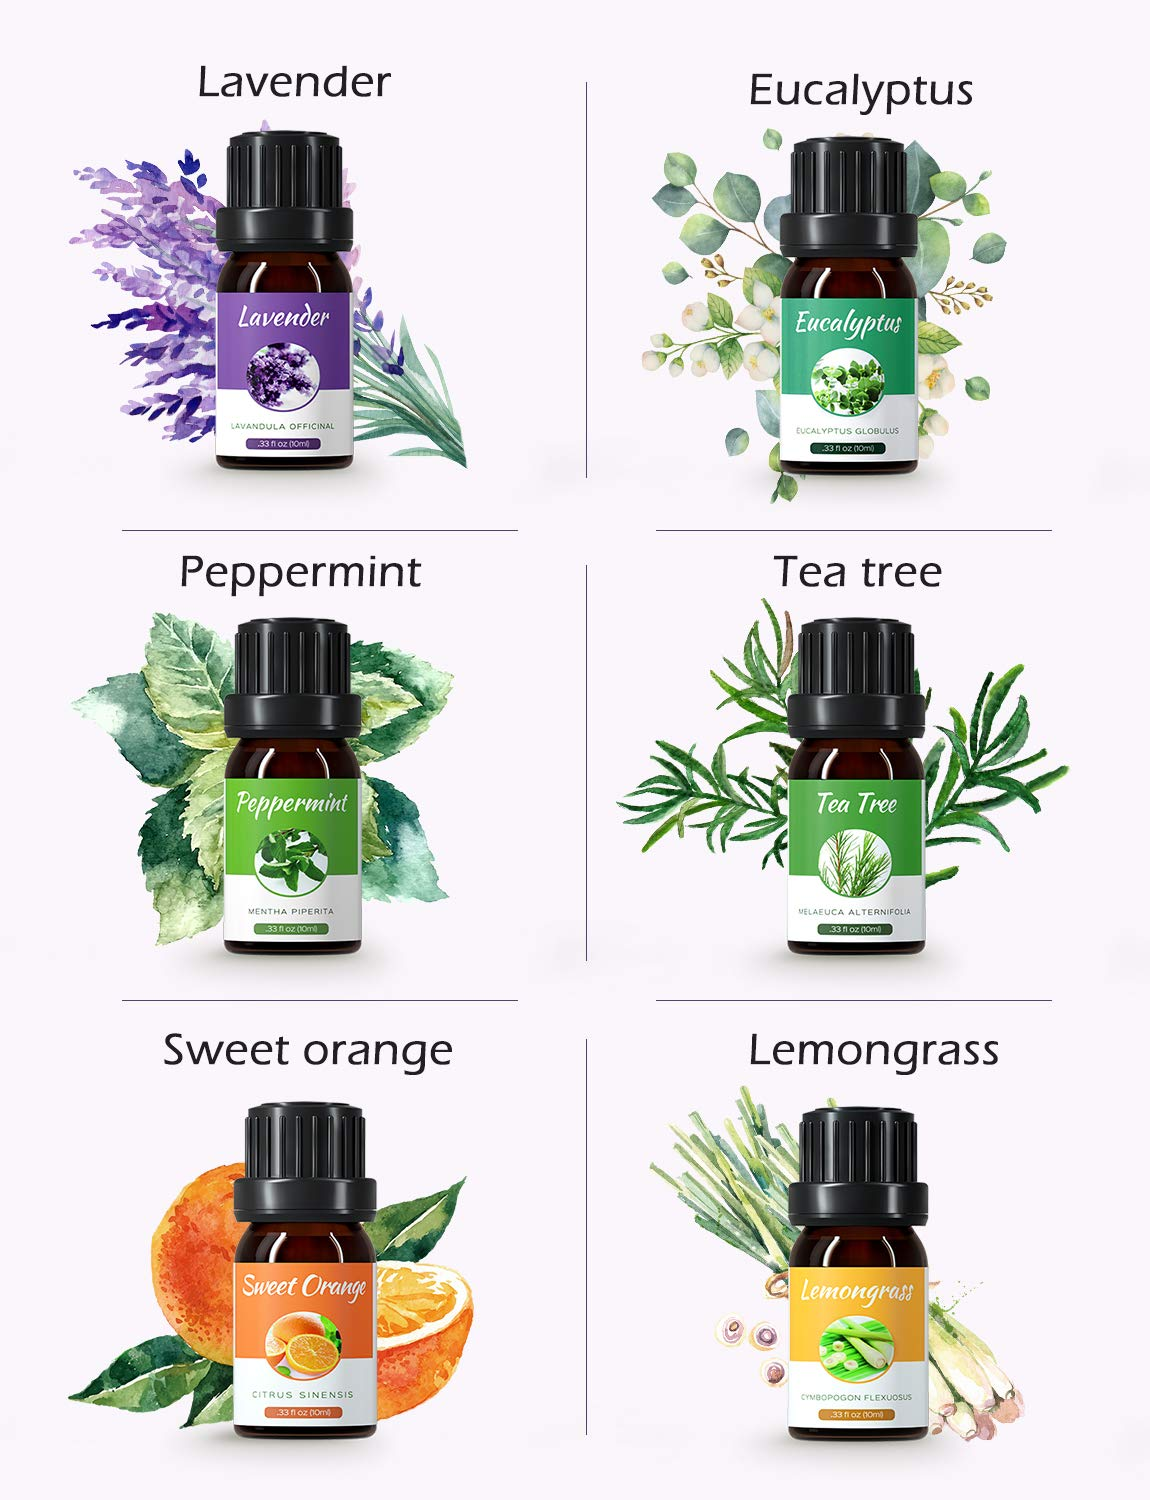 Homasy Essential Oils Set, Top 6x10mL Essential Oils Gift Set, Aromatherapy Essential Oil for Diffuser, Humidifier, Skin Use, Hair Care, DIY, etc